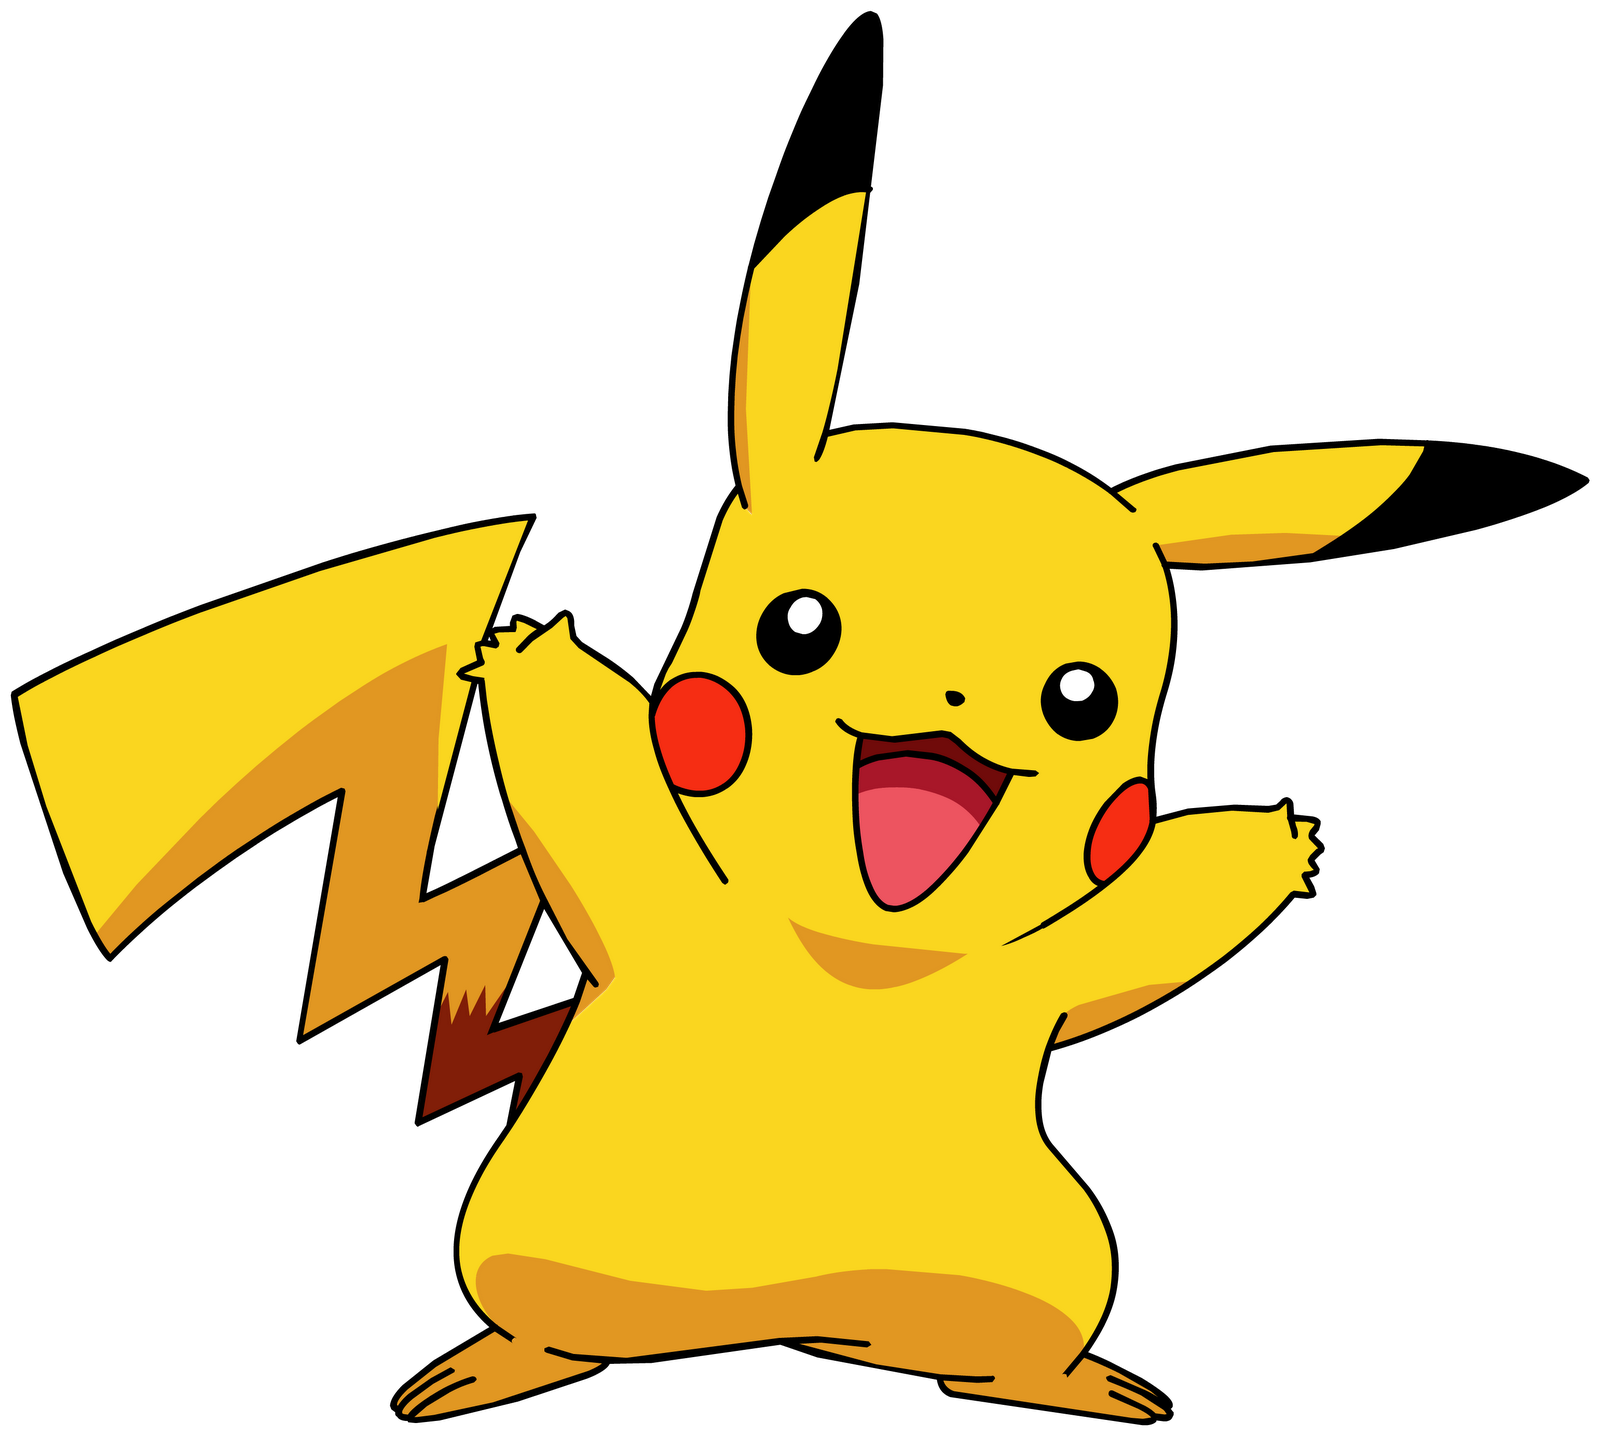 svg transparent library Big free on dumielauxepices. Pikachu clipart.